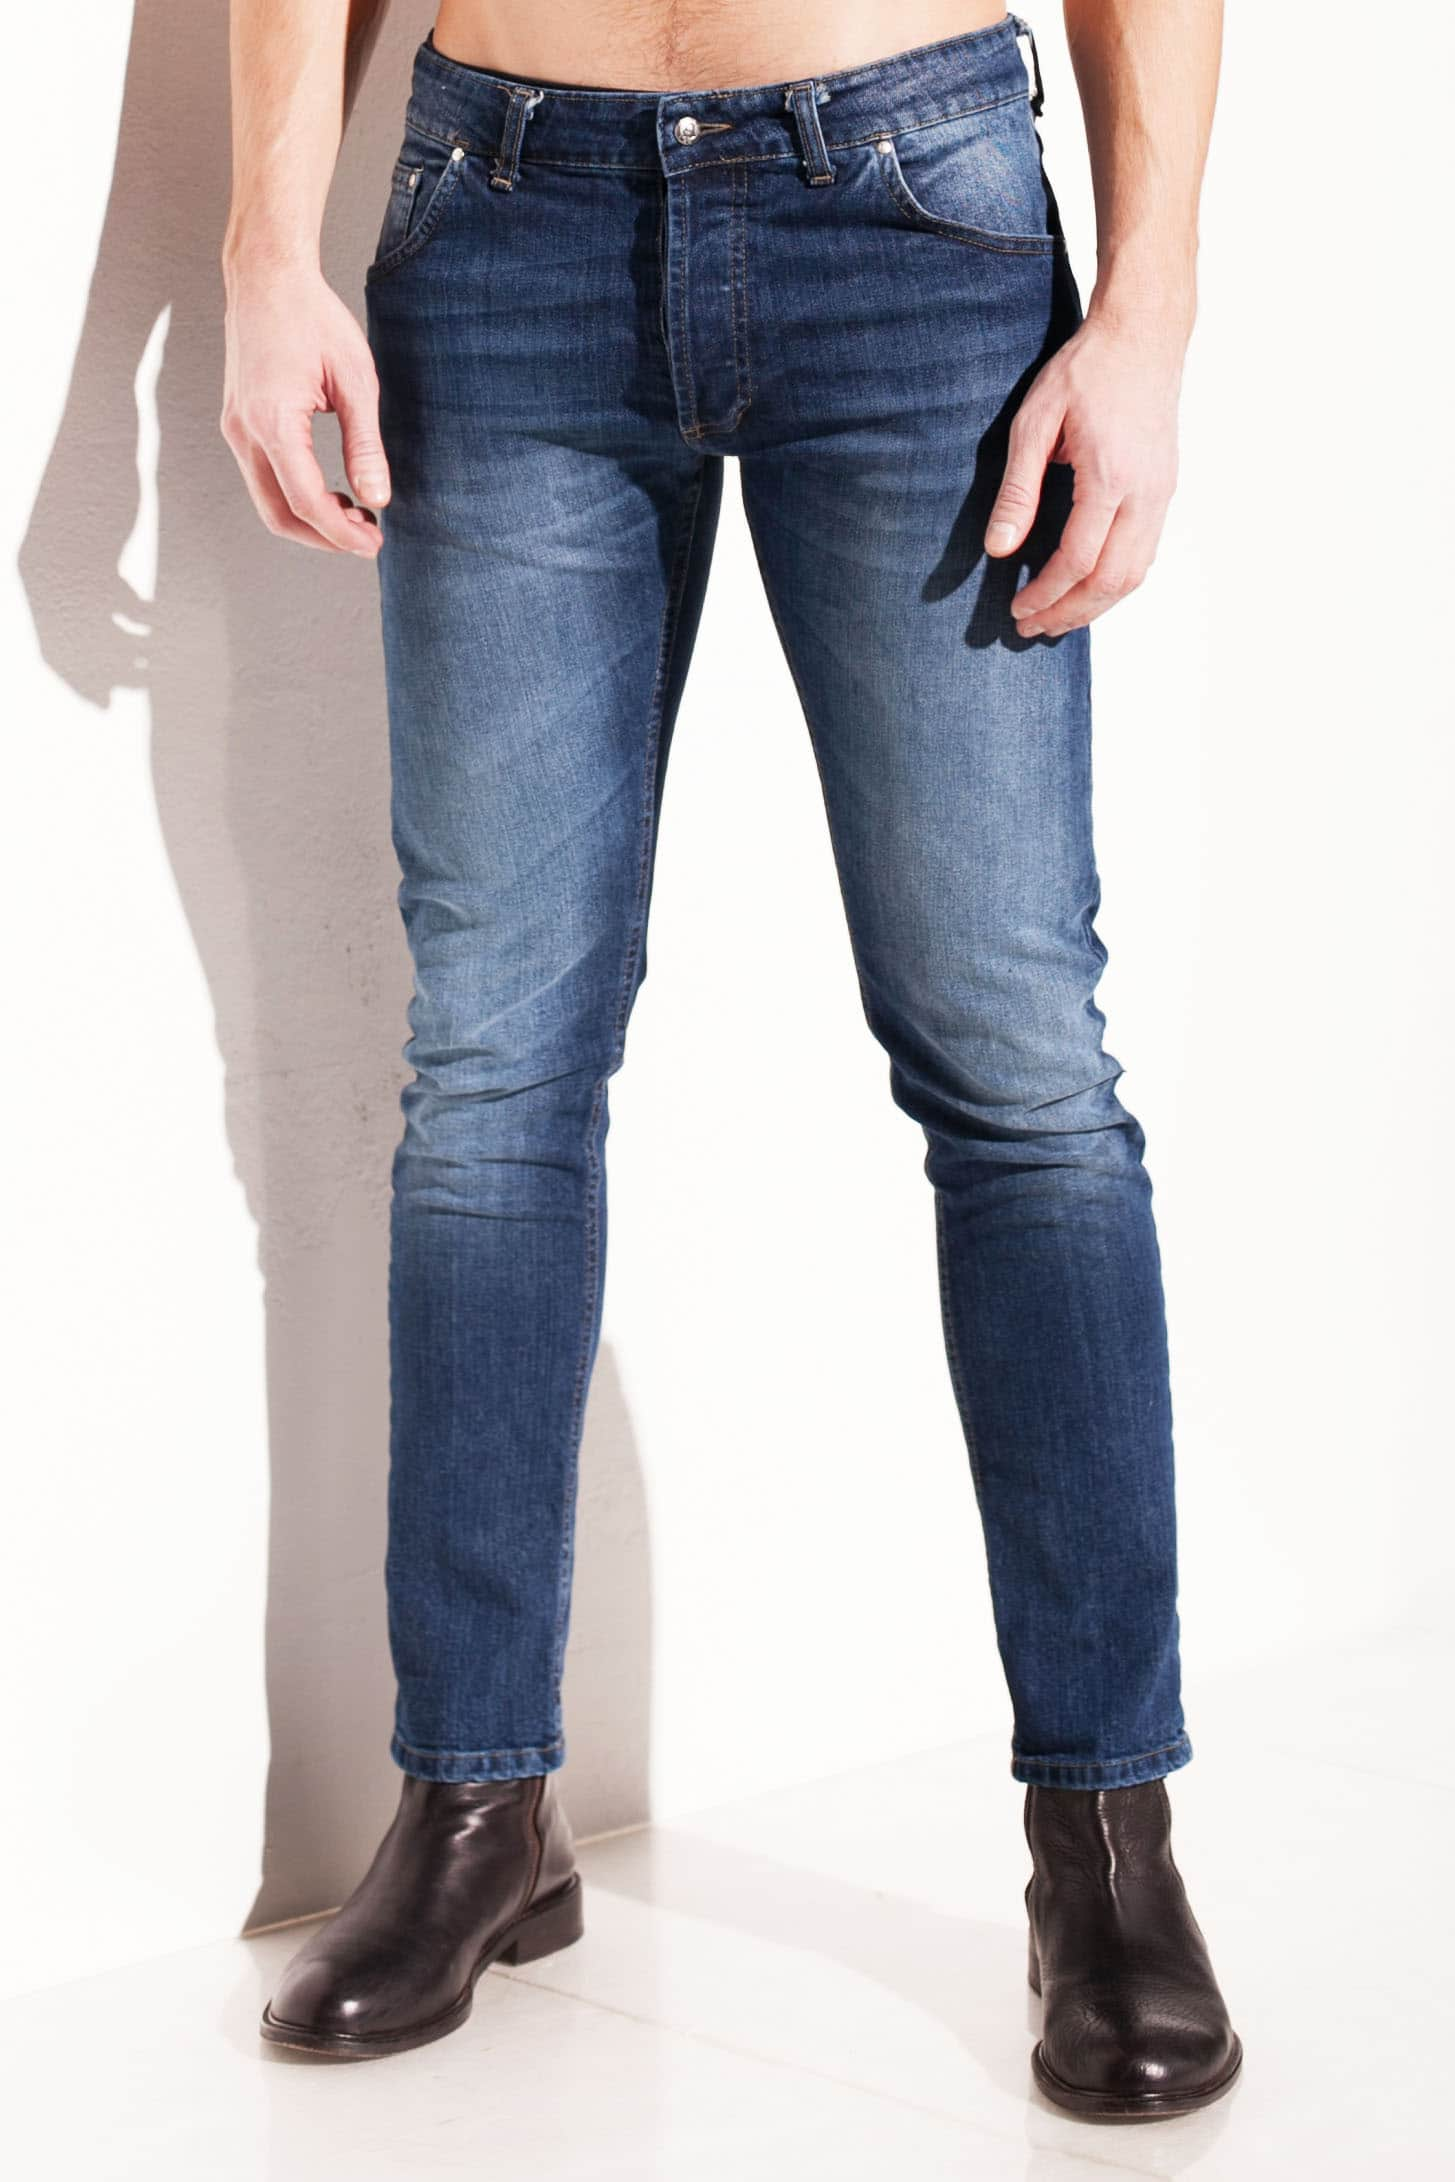 jeans Chessa Lab uomo slim fit